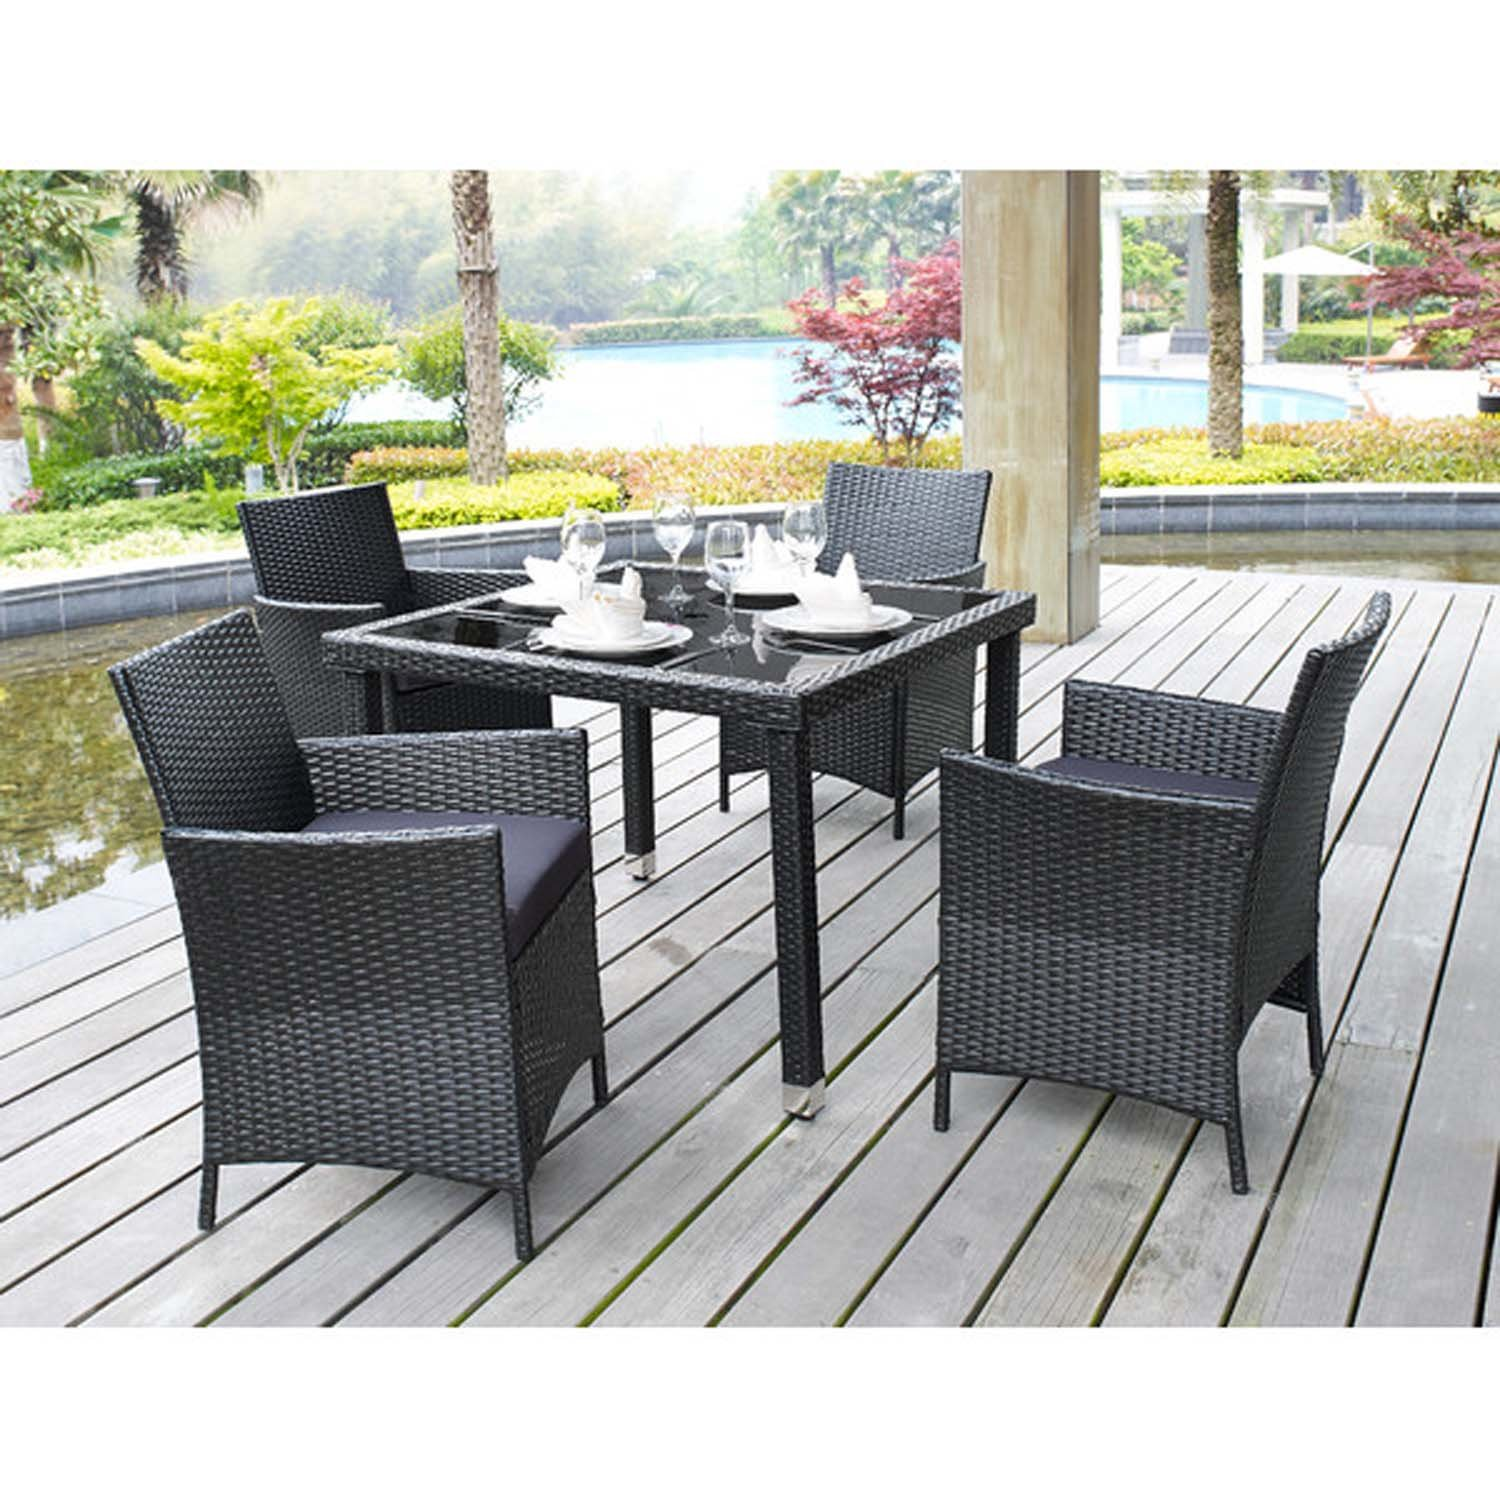 Inspirational Patio Furniture without Cushions